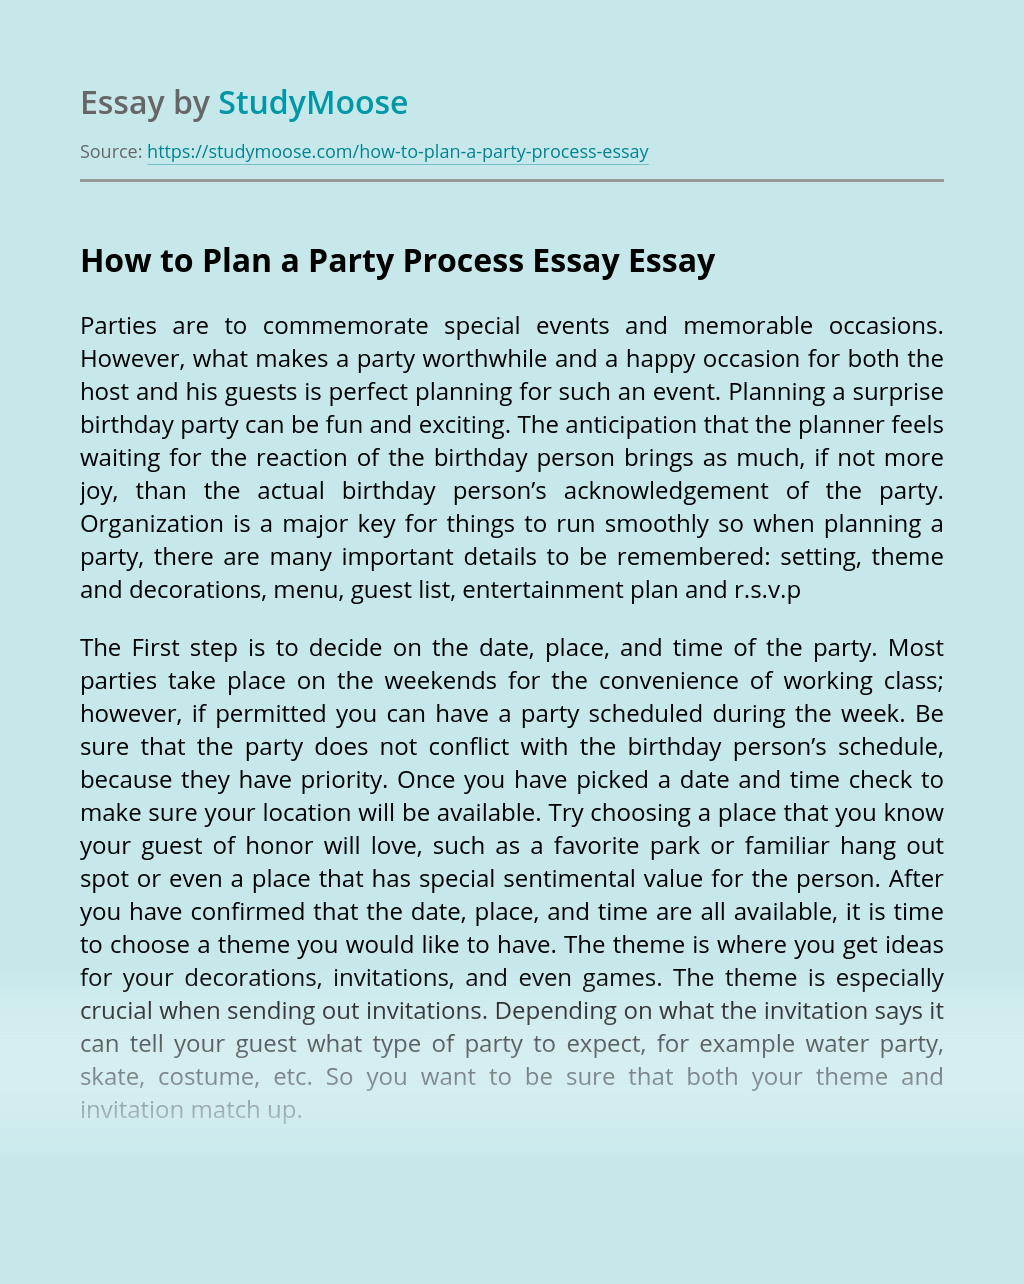 How to Plan a Party Process Essay